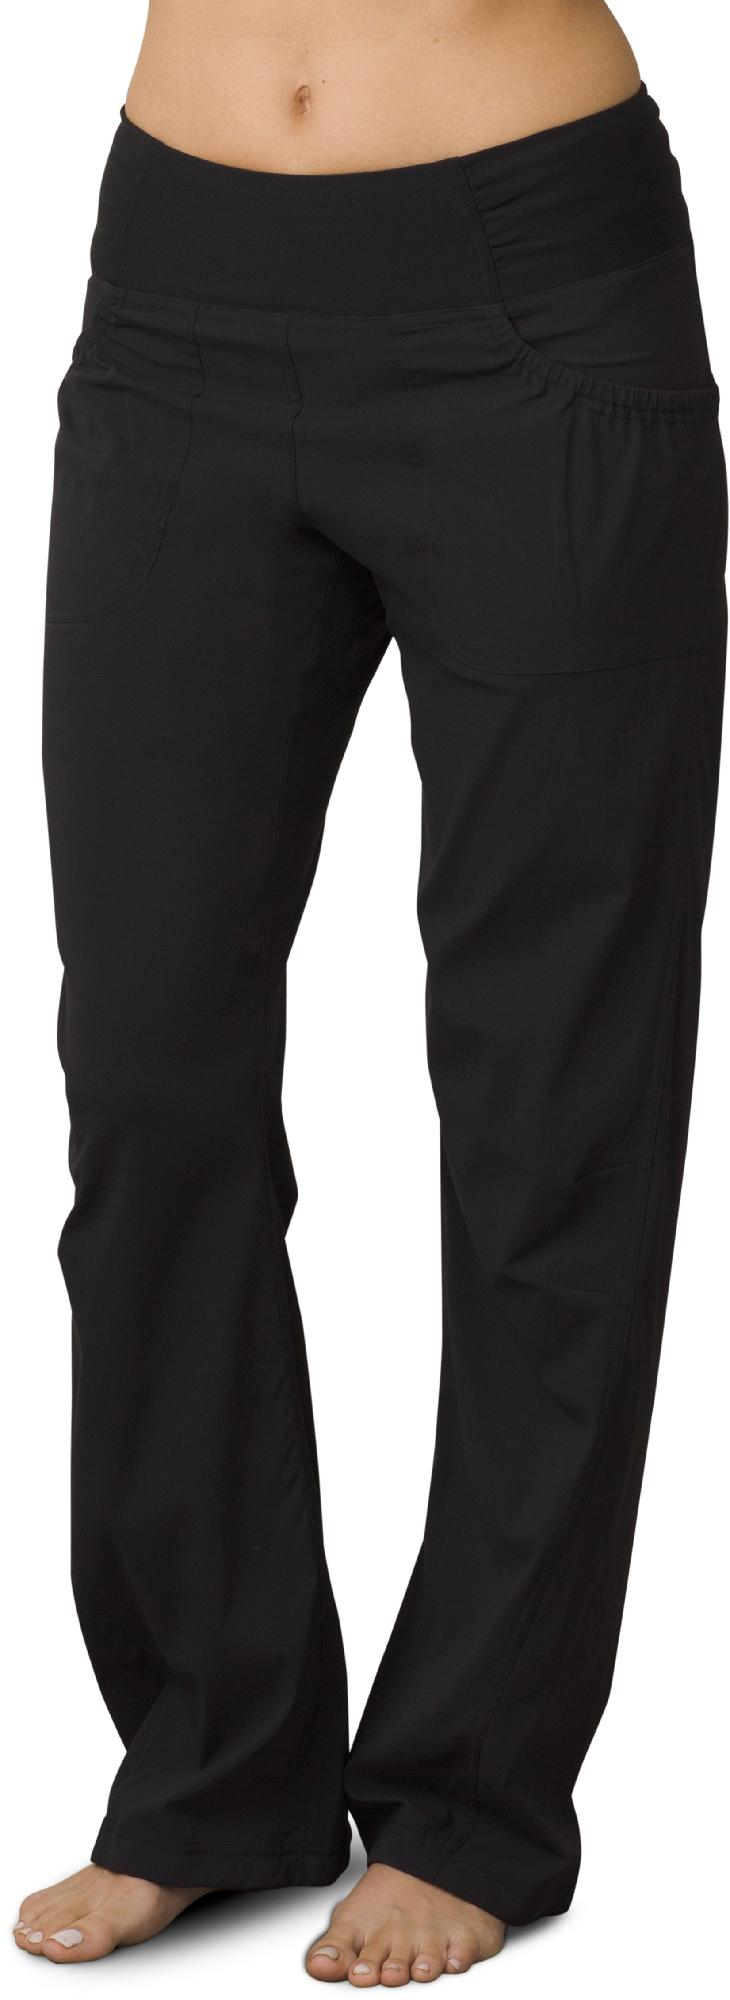 prAna Summit Pants - Women's